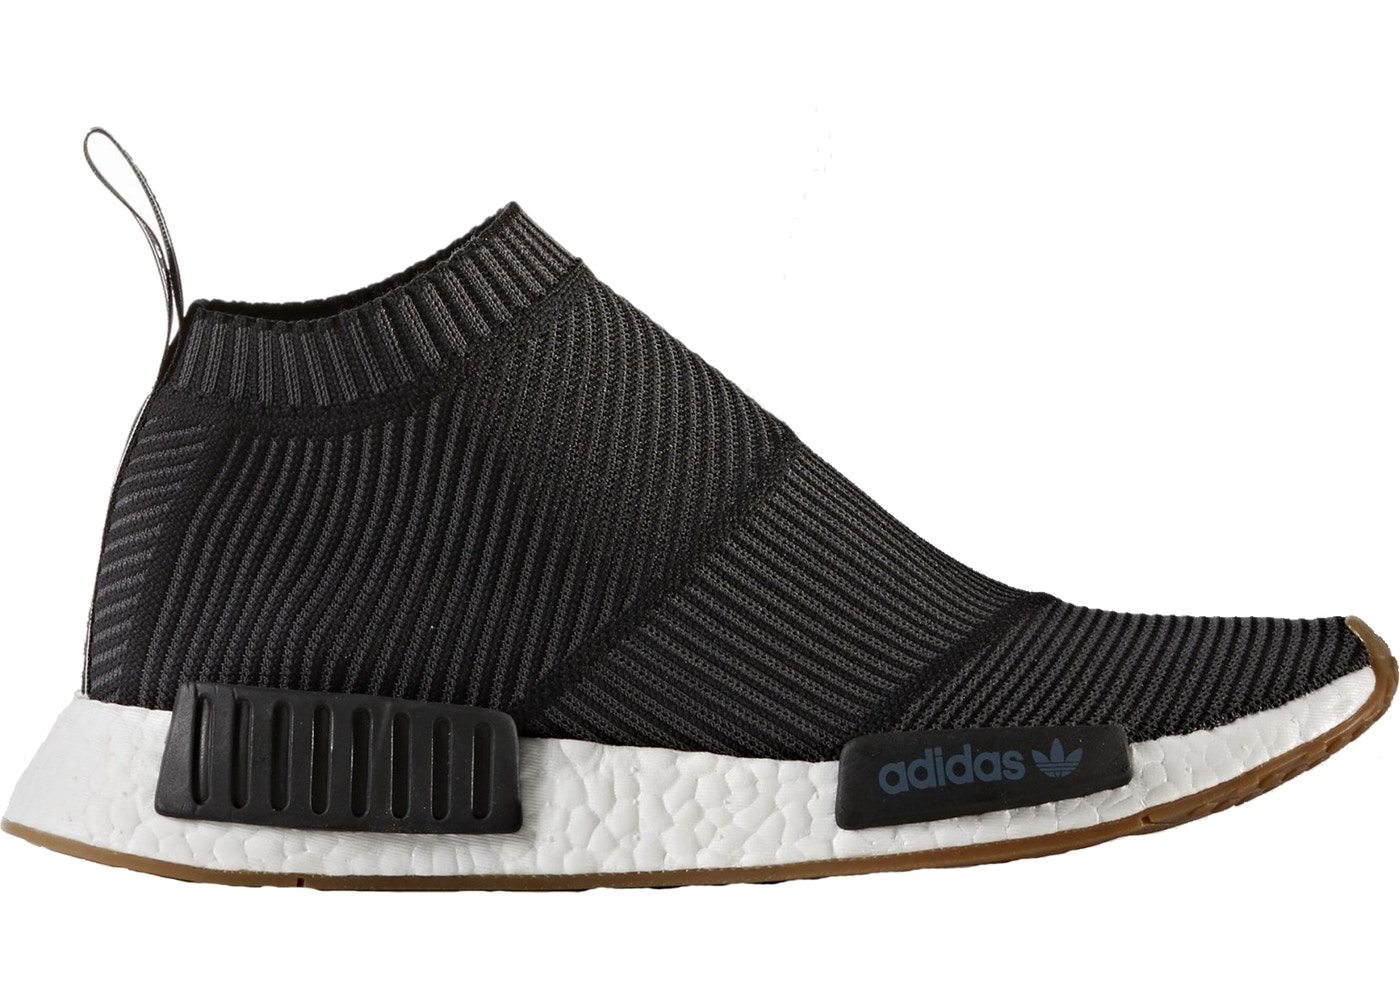 da04579dd adidas NMD City Sock Gum Pack Black - BA7209